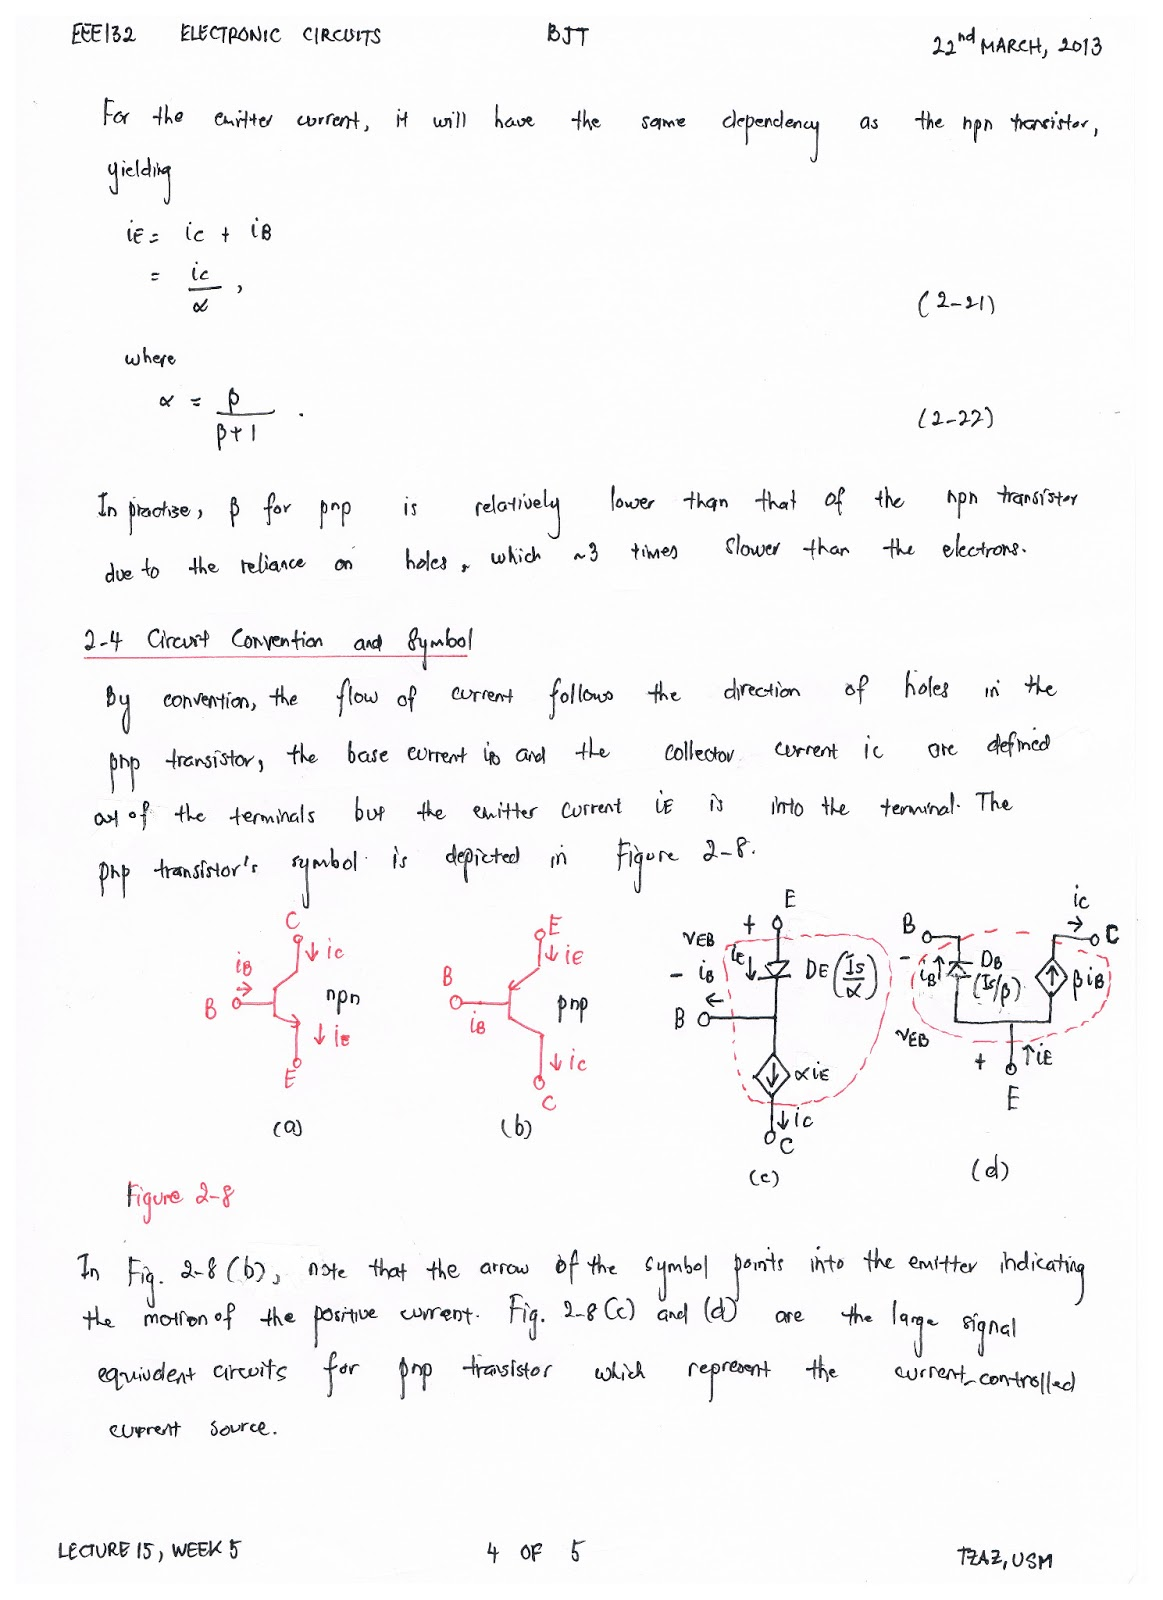 eee132 electronic circuits lecture 15 22nd march, 2013 (week 5) ( 3Electronic Circuit Notes Pdf #11